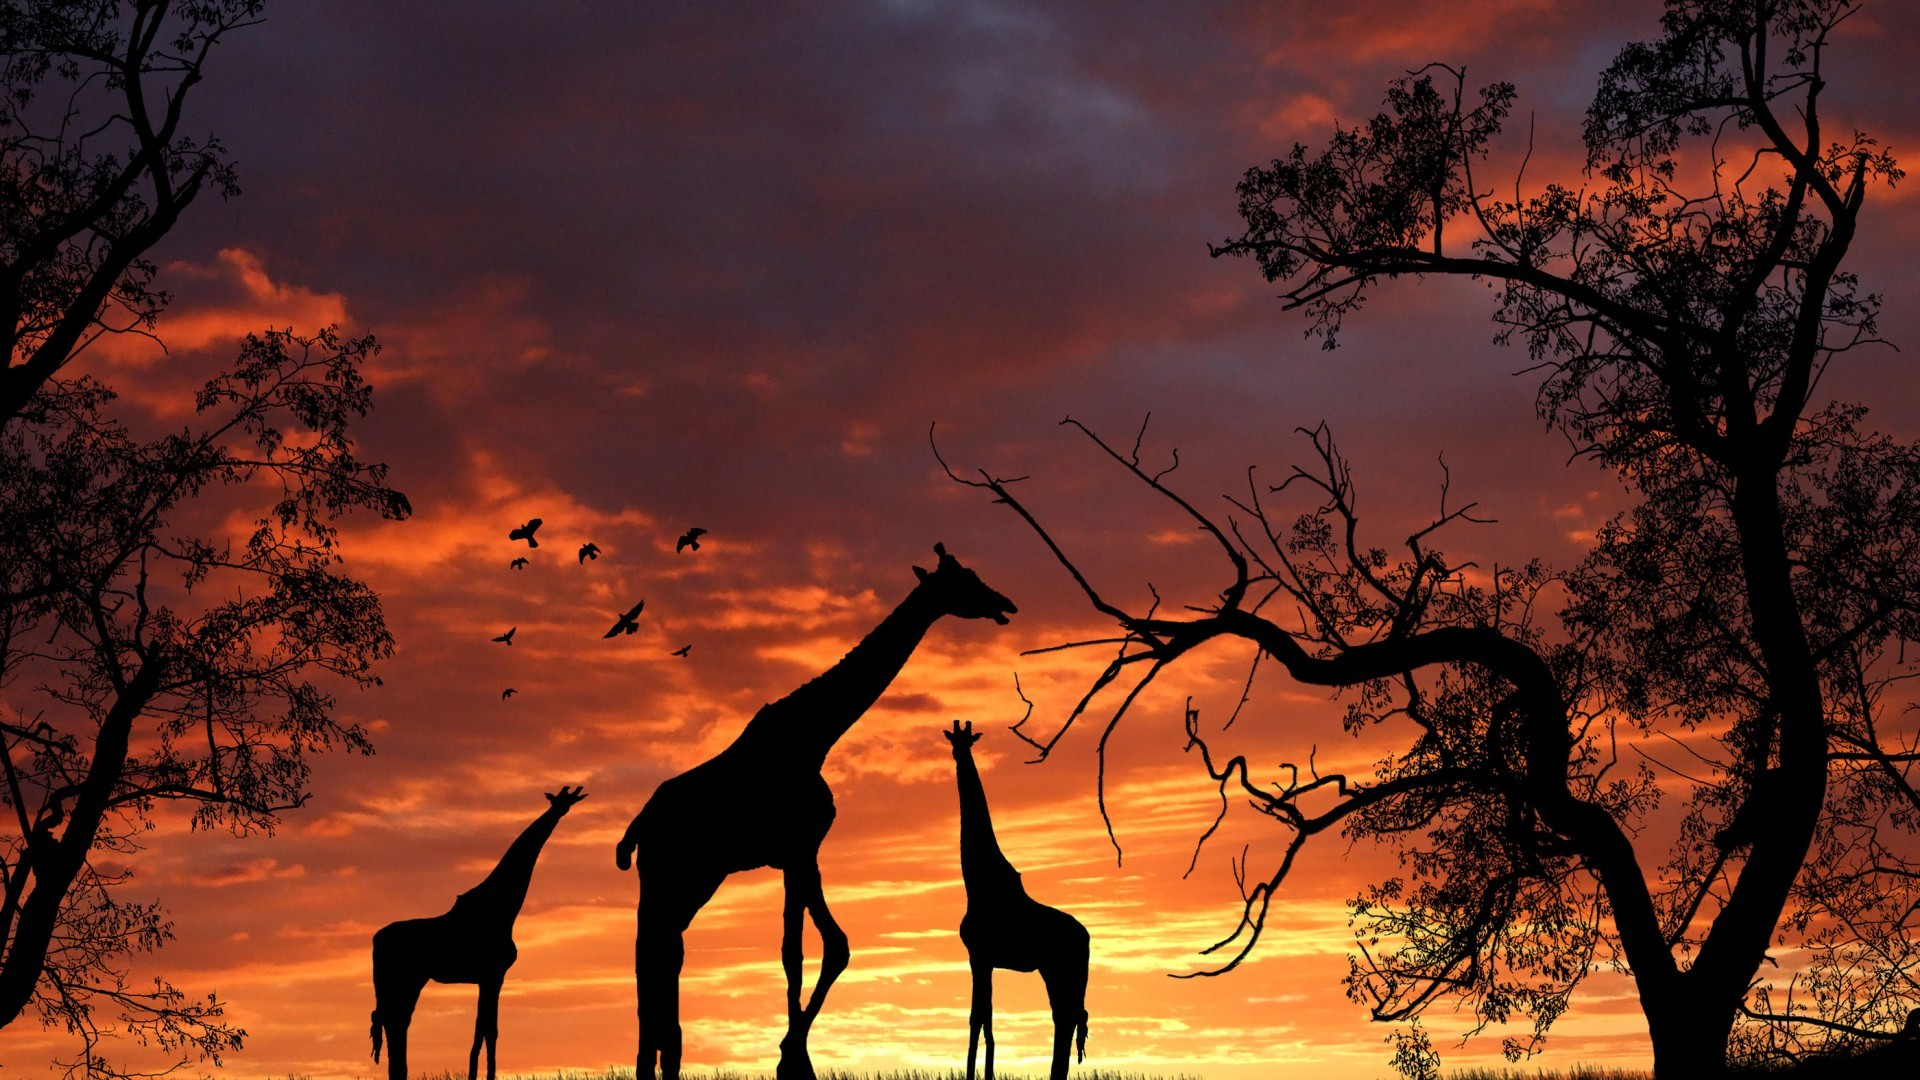 Hd Fall Wallpapers Phone Giraffes Wallpapers 78 Images